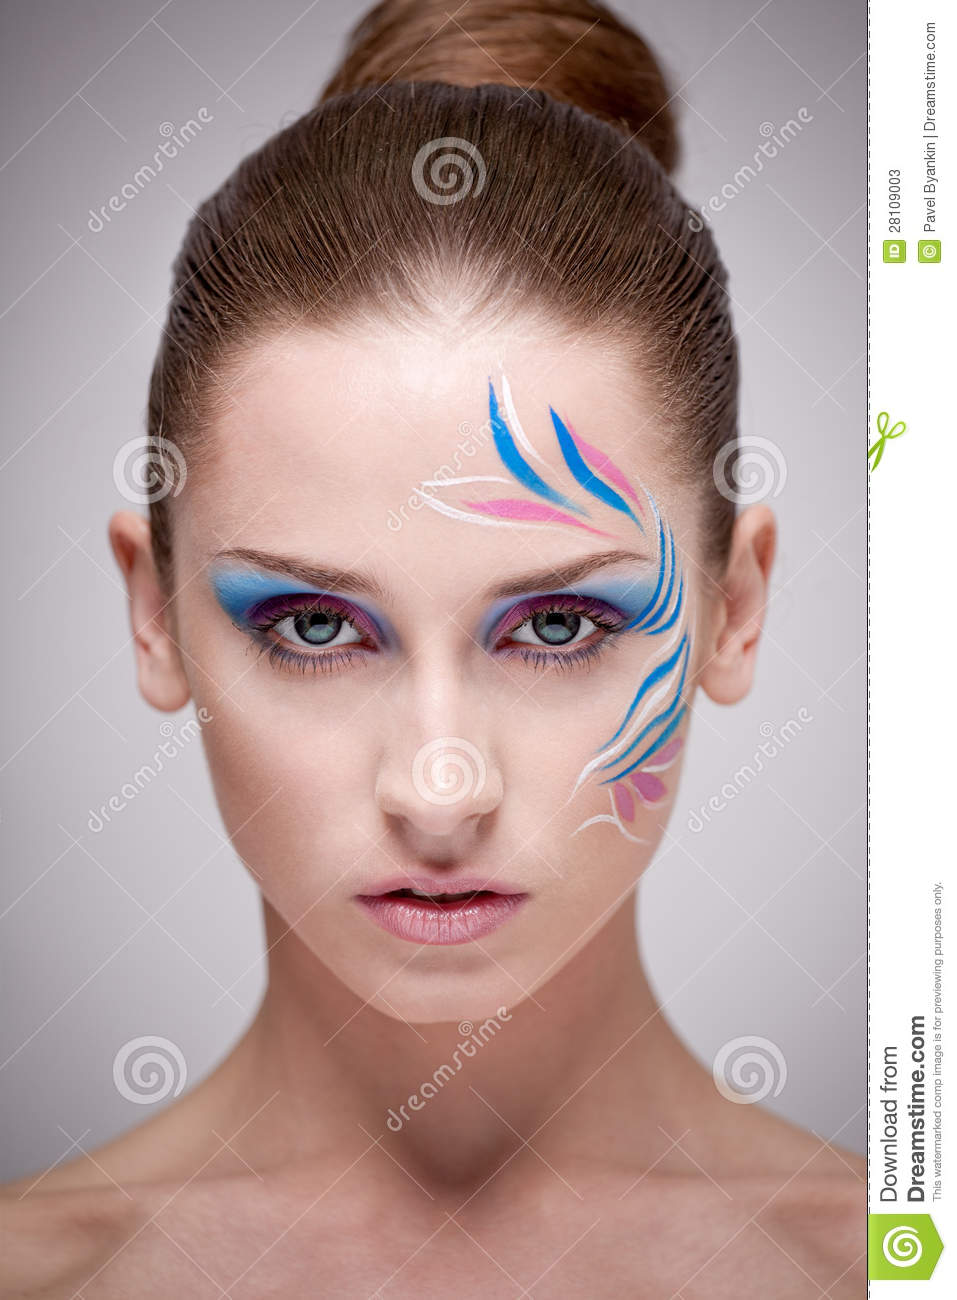 Fashion Make-up With Face Art. Stock Photos - Image: 28109003